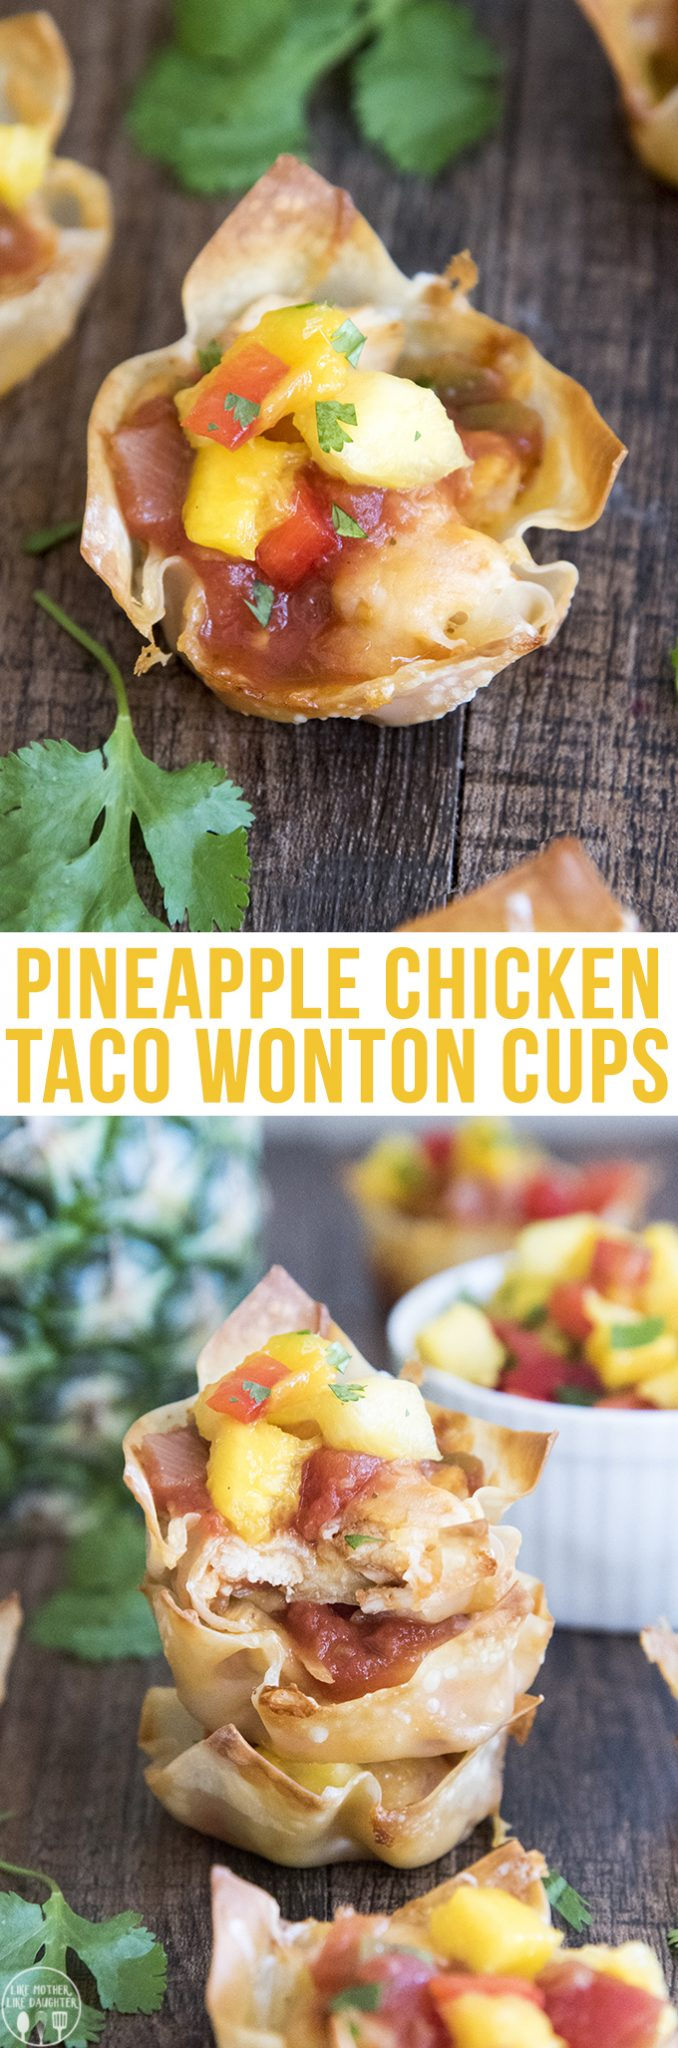 Pineapple Chicken Taco Wonton Cups - These wonton cups have layers of crunchy wonton shells, salsa seasoned chicken, melty cheese, and are topped with a fresh pineapple, mango salsa.